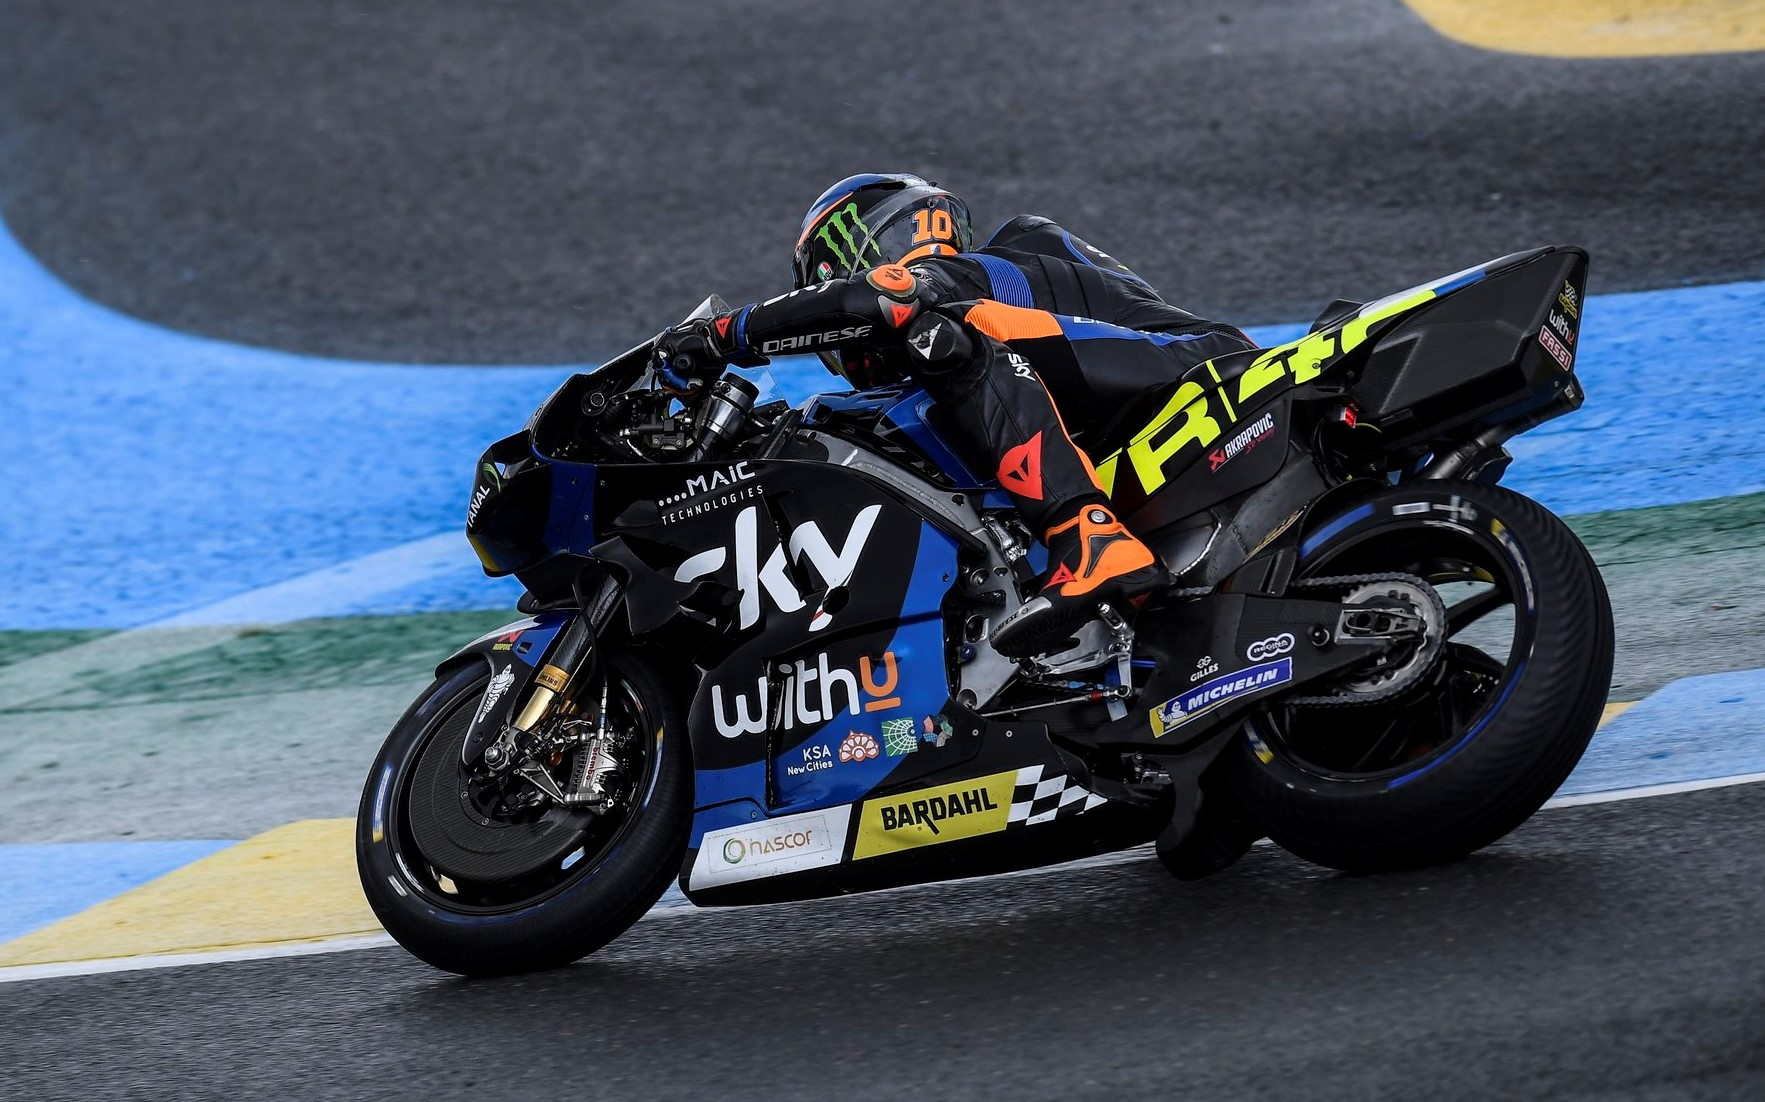 Vr46 Set To Be A Satellite Team For Ducati In 2022 Racetrackmasters Com